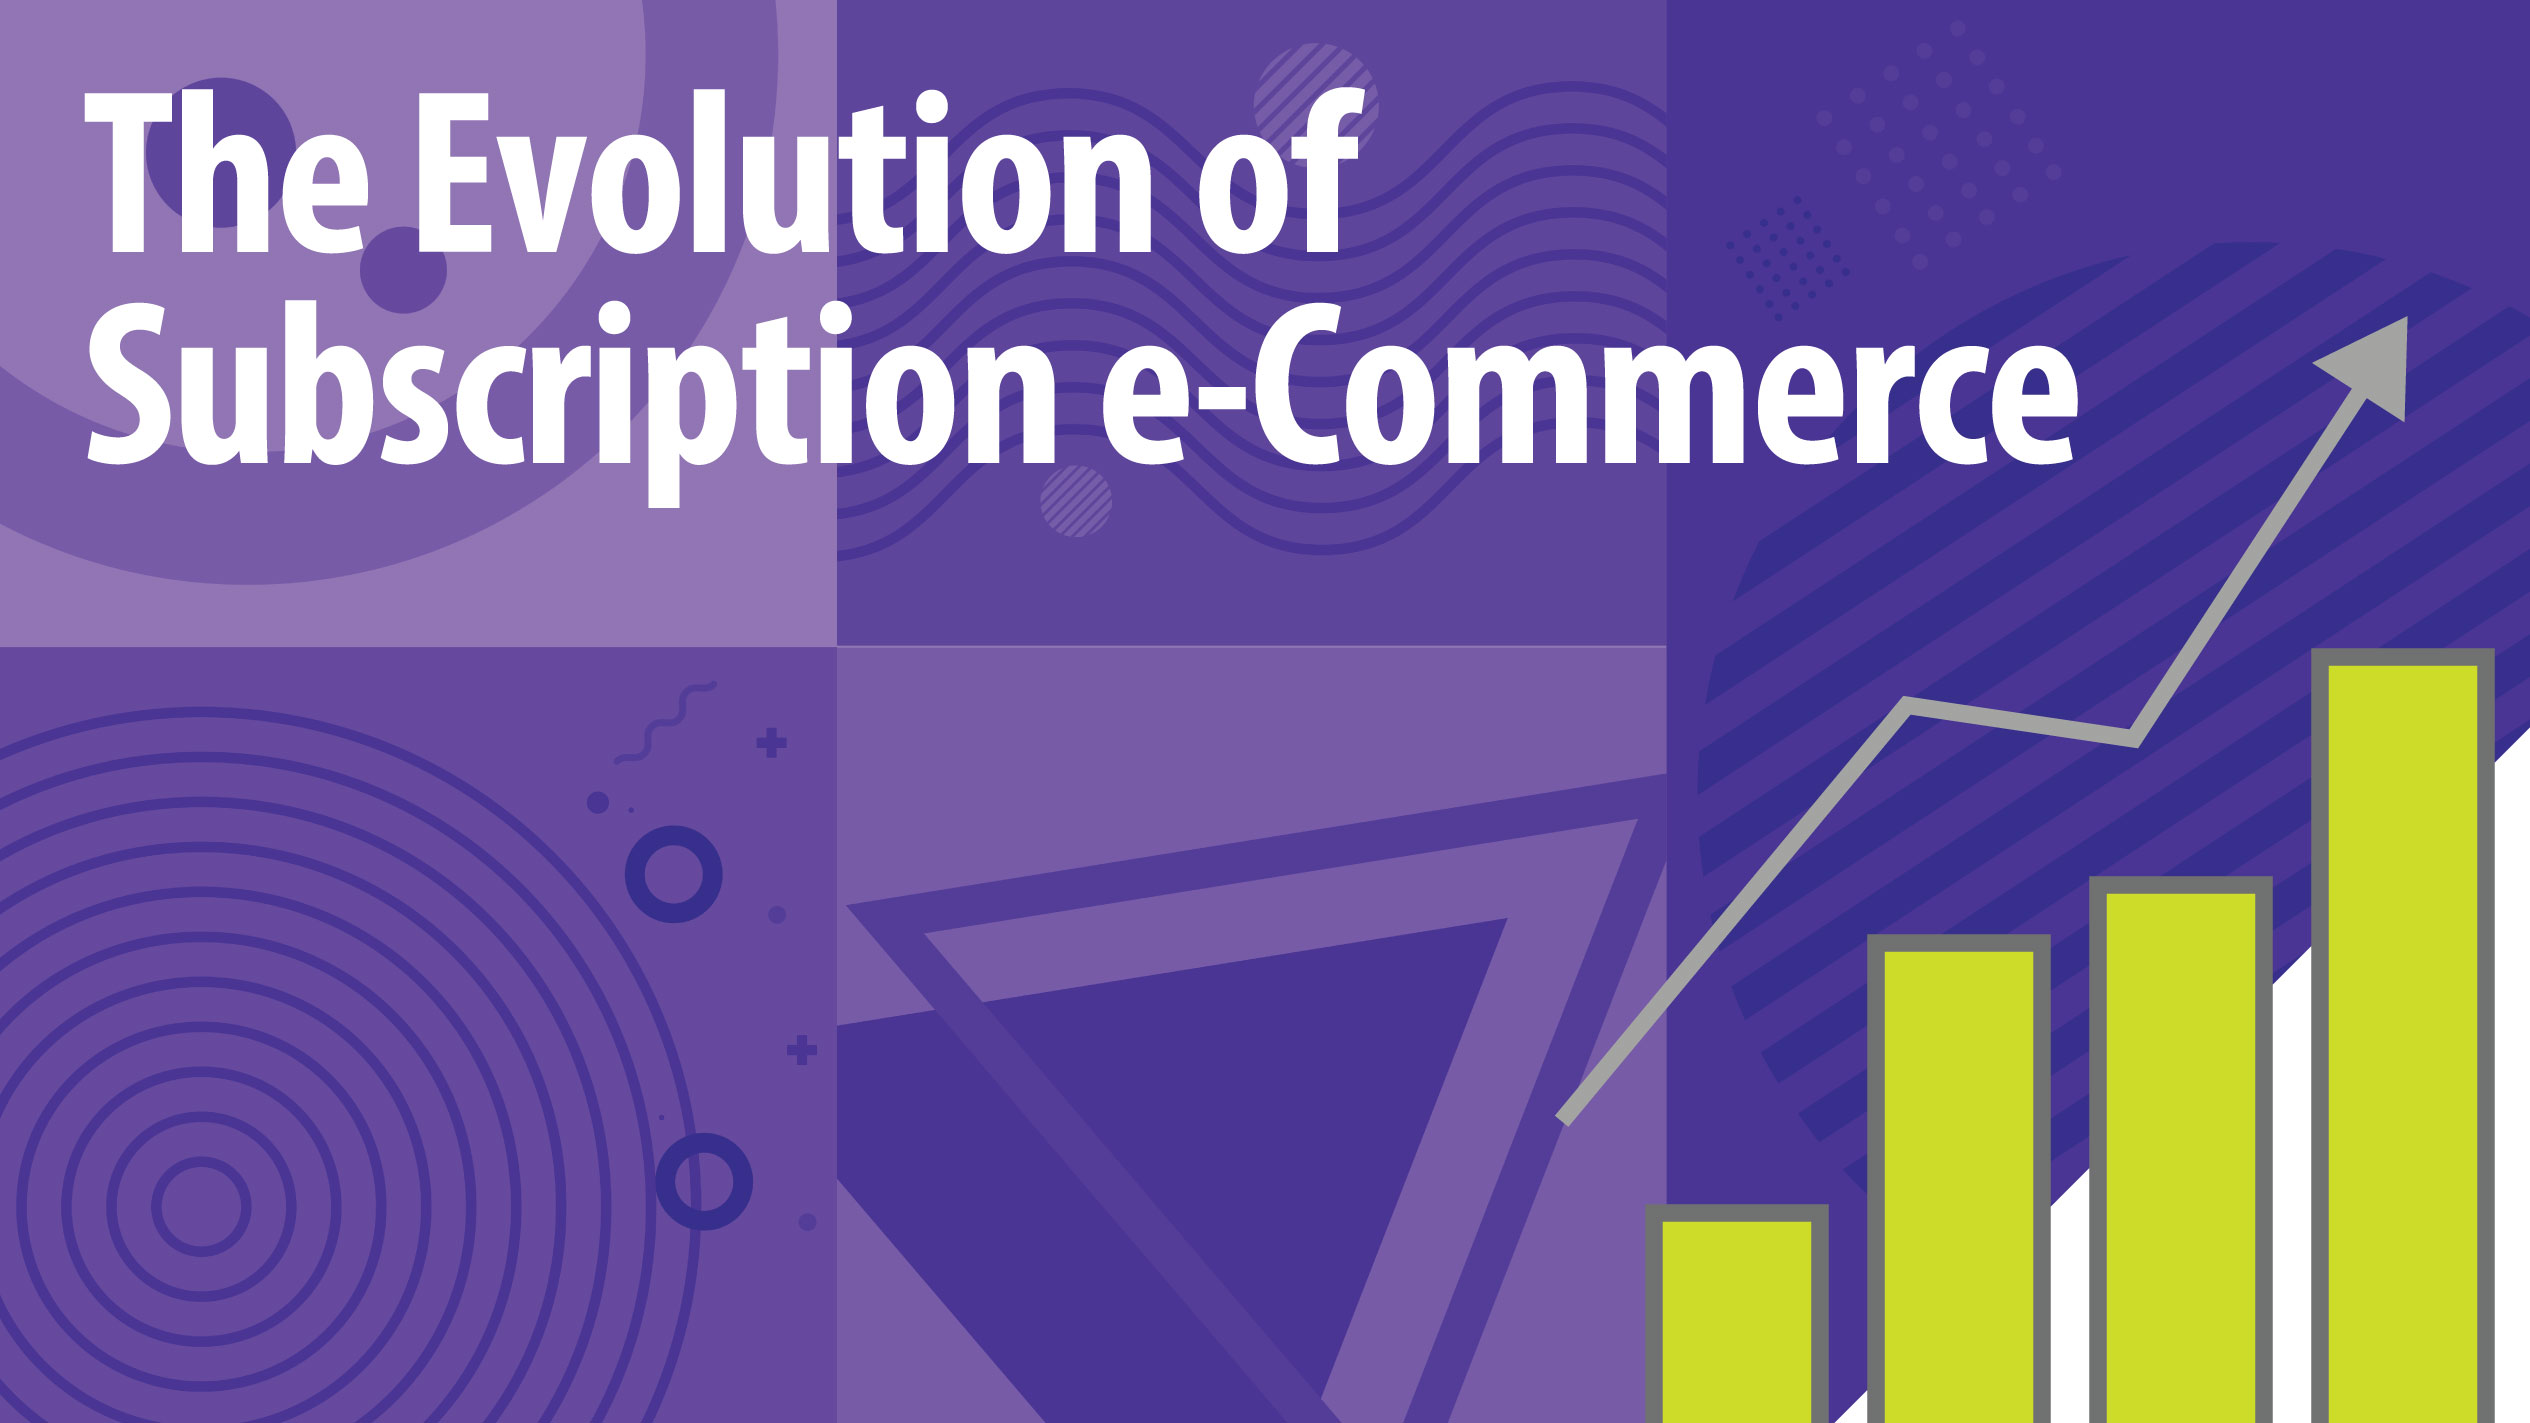 The Evolution of Subscription e-Commerce